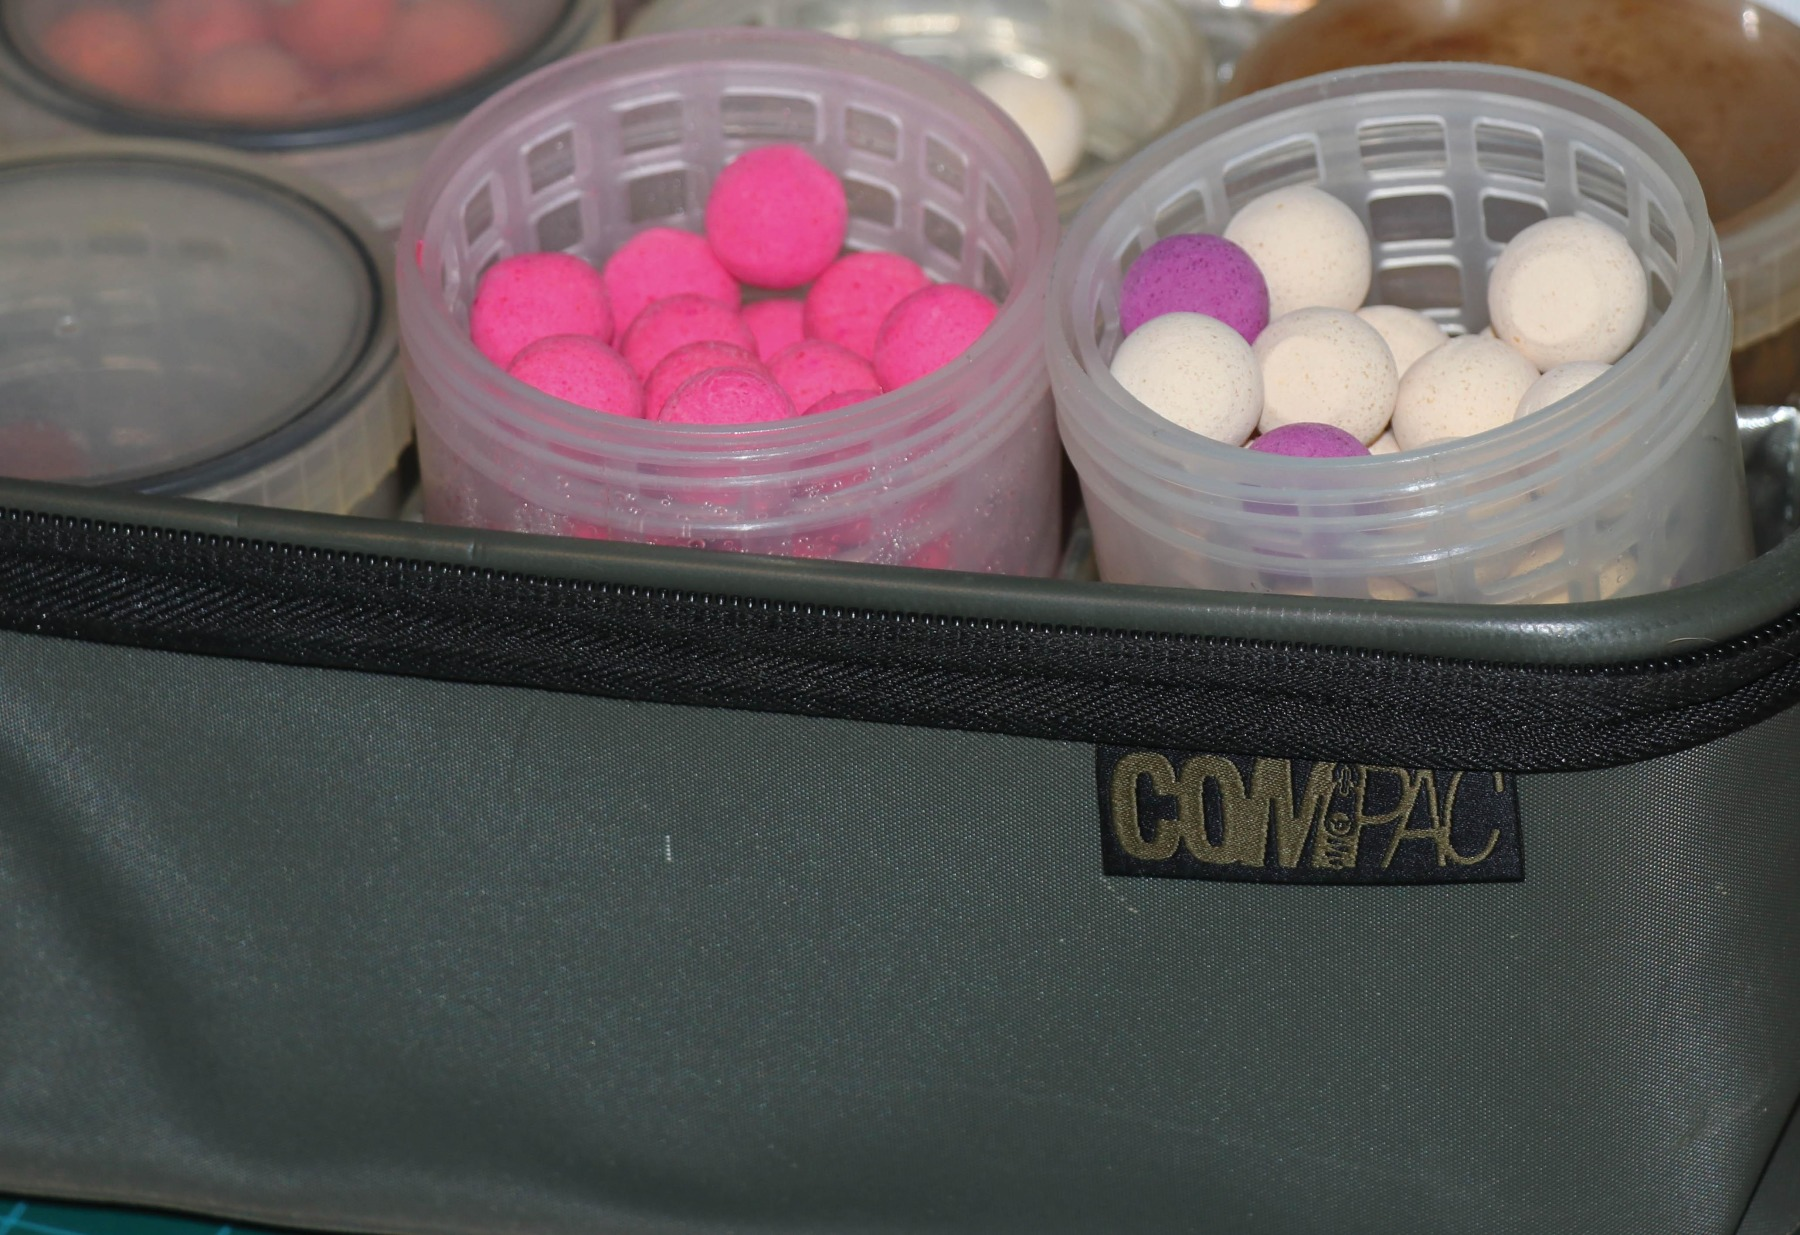 The Korda Compac is perfect for my collection of pimped hookbaits